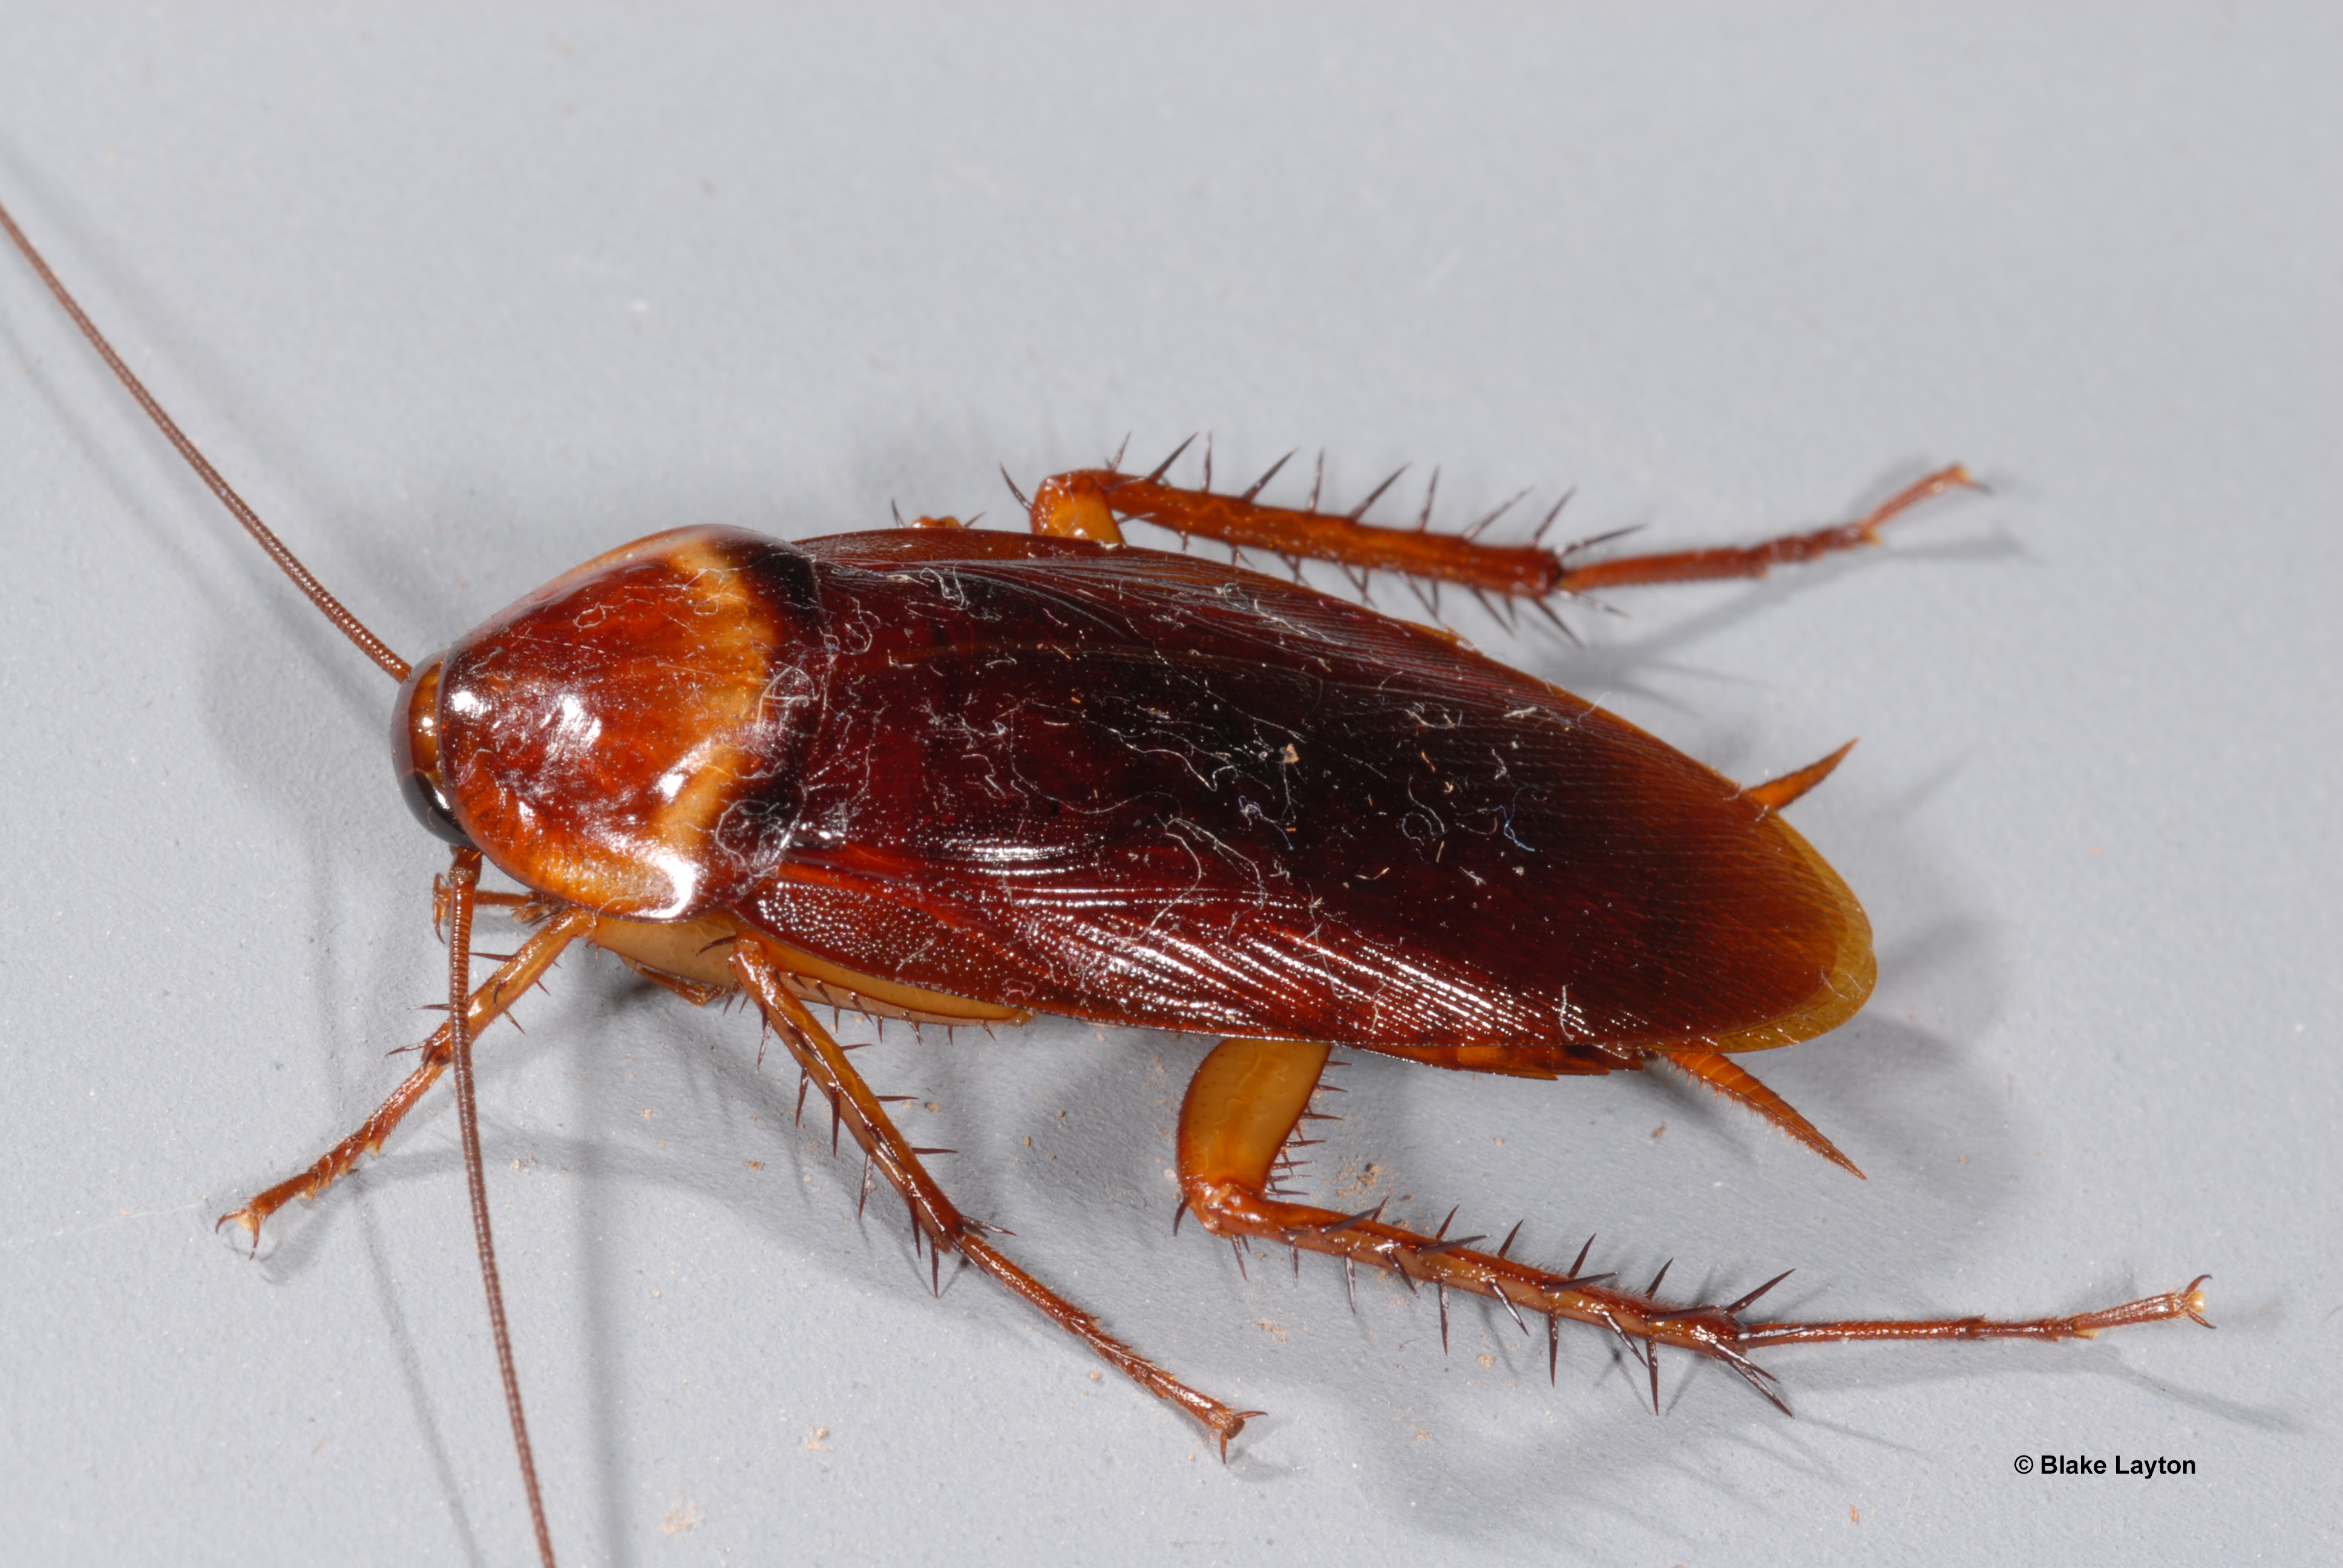 Brown roach with four visible legs and long whiskers.